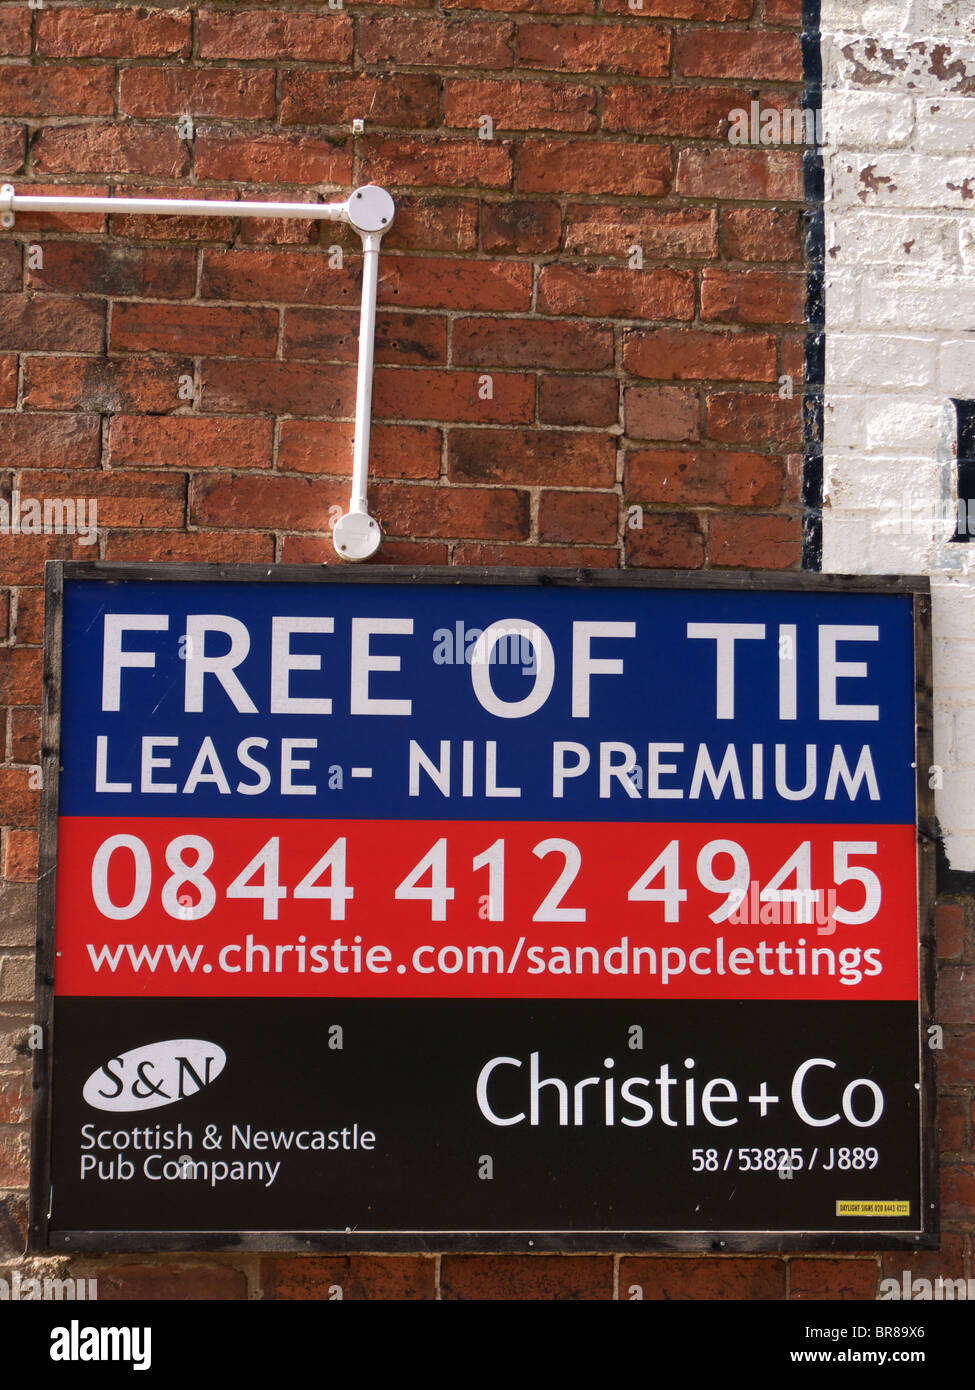 Commercial To Let Sign for a Public House fixed to a Wall, UK - Stock Image